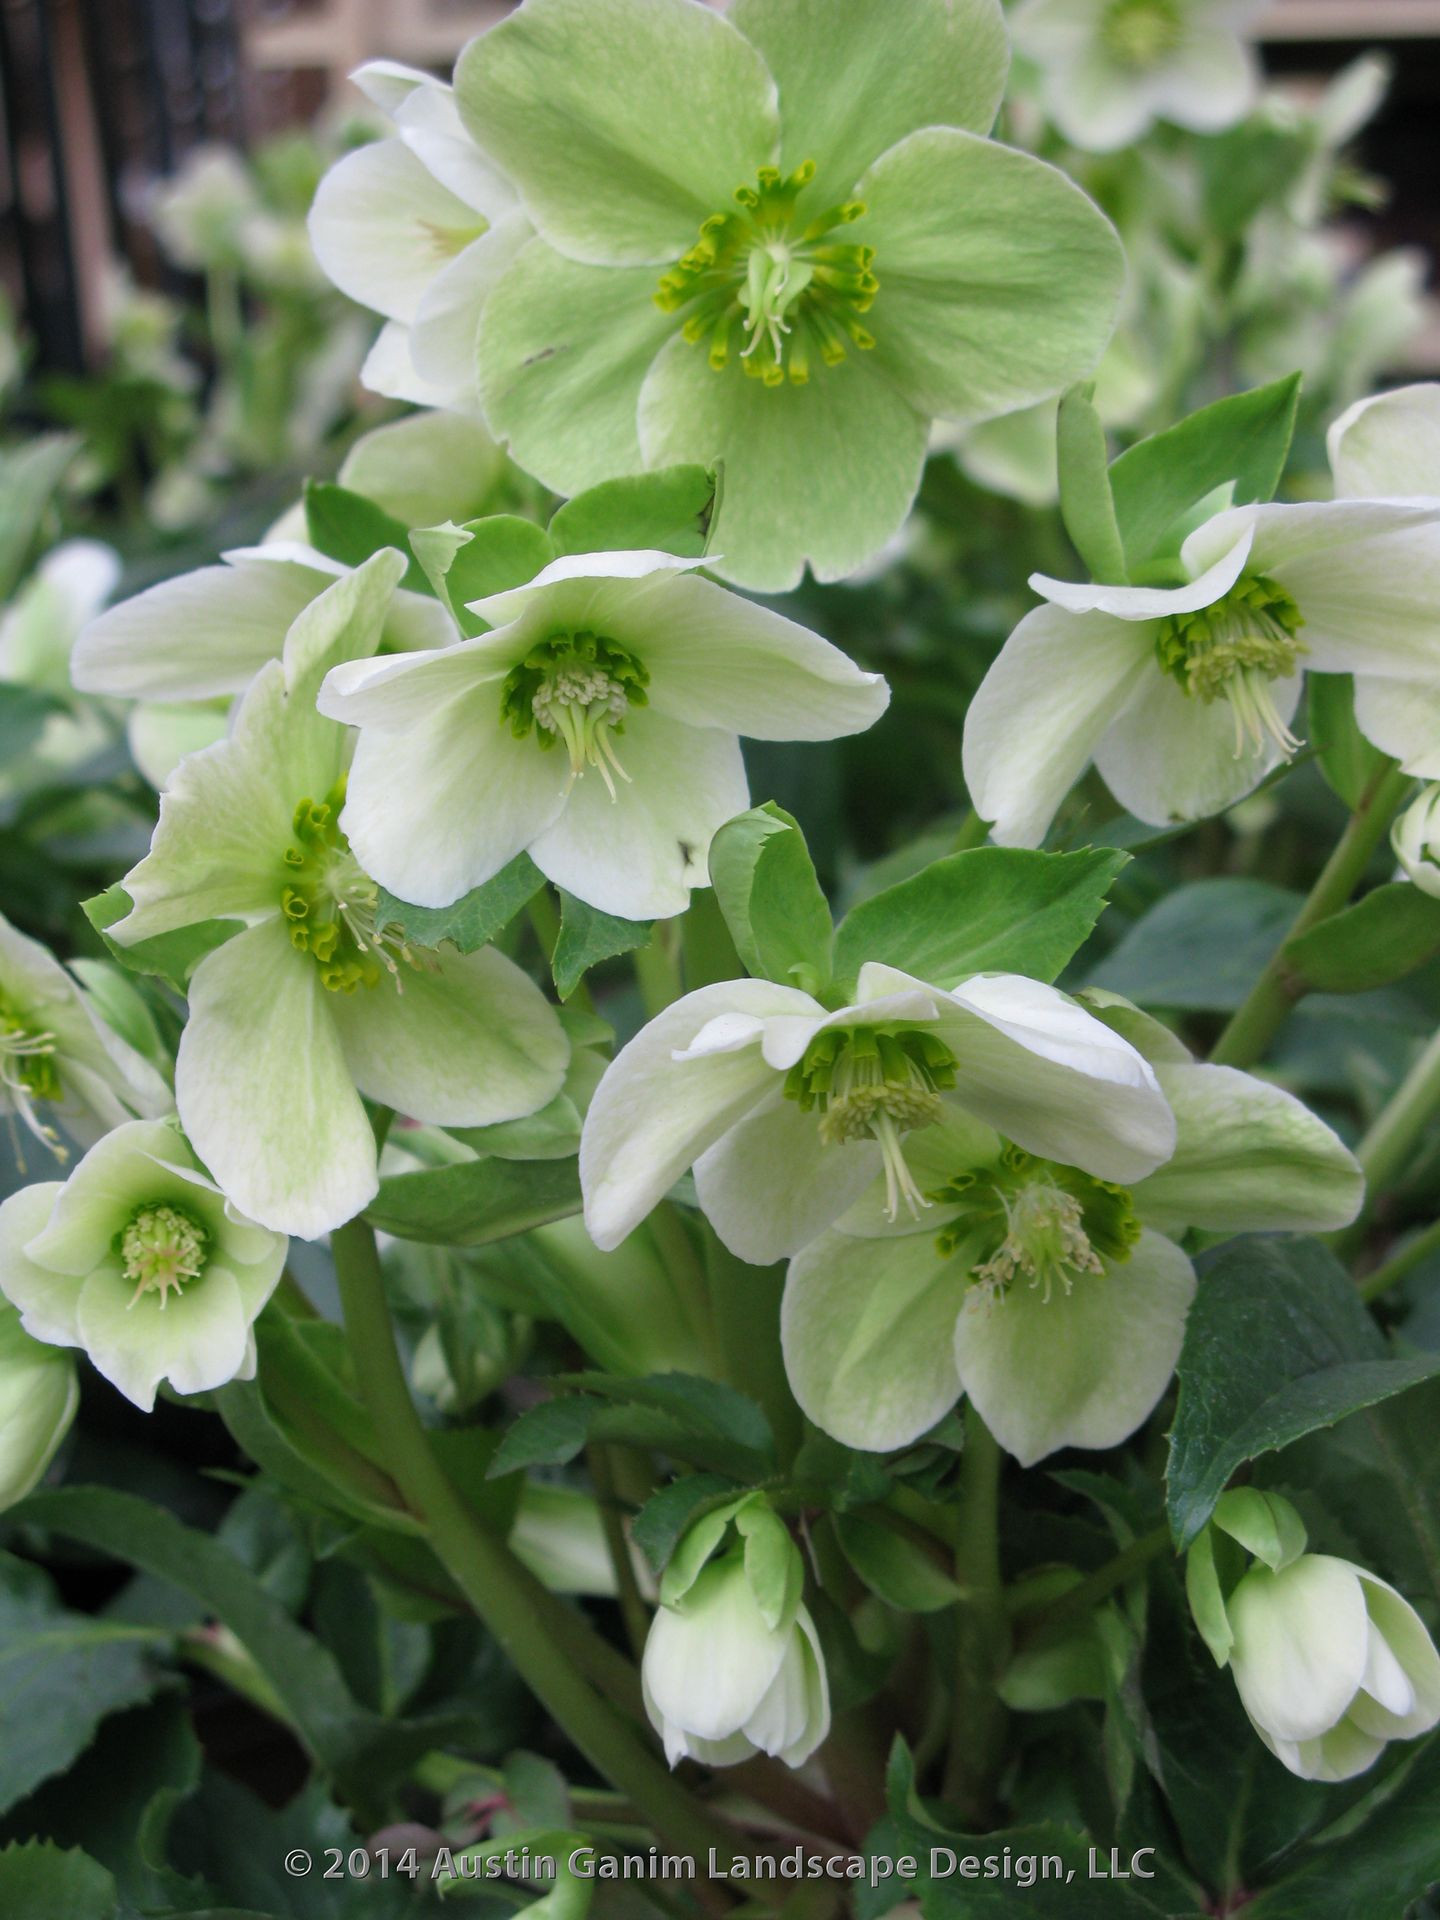 White flowering Helleborus nigra also know as the Christmas rose or Black Hellebore winter flowering perennial semi evergreen foliage